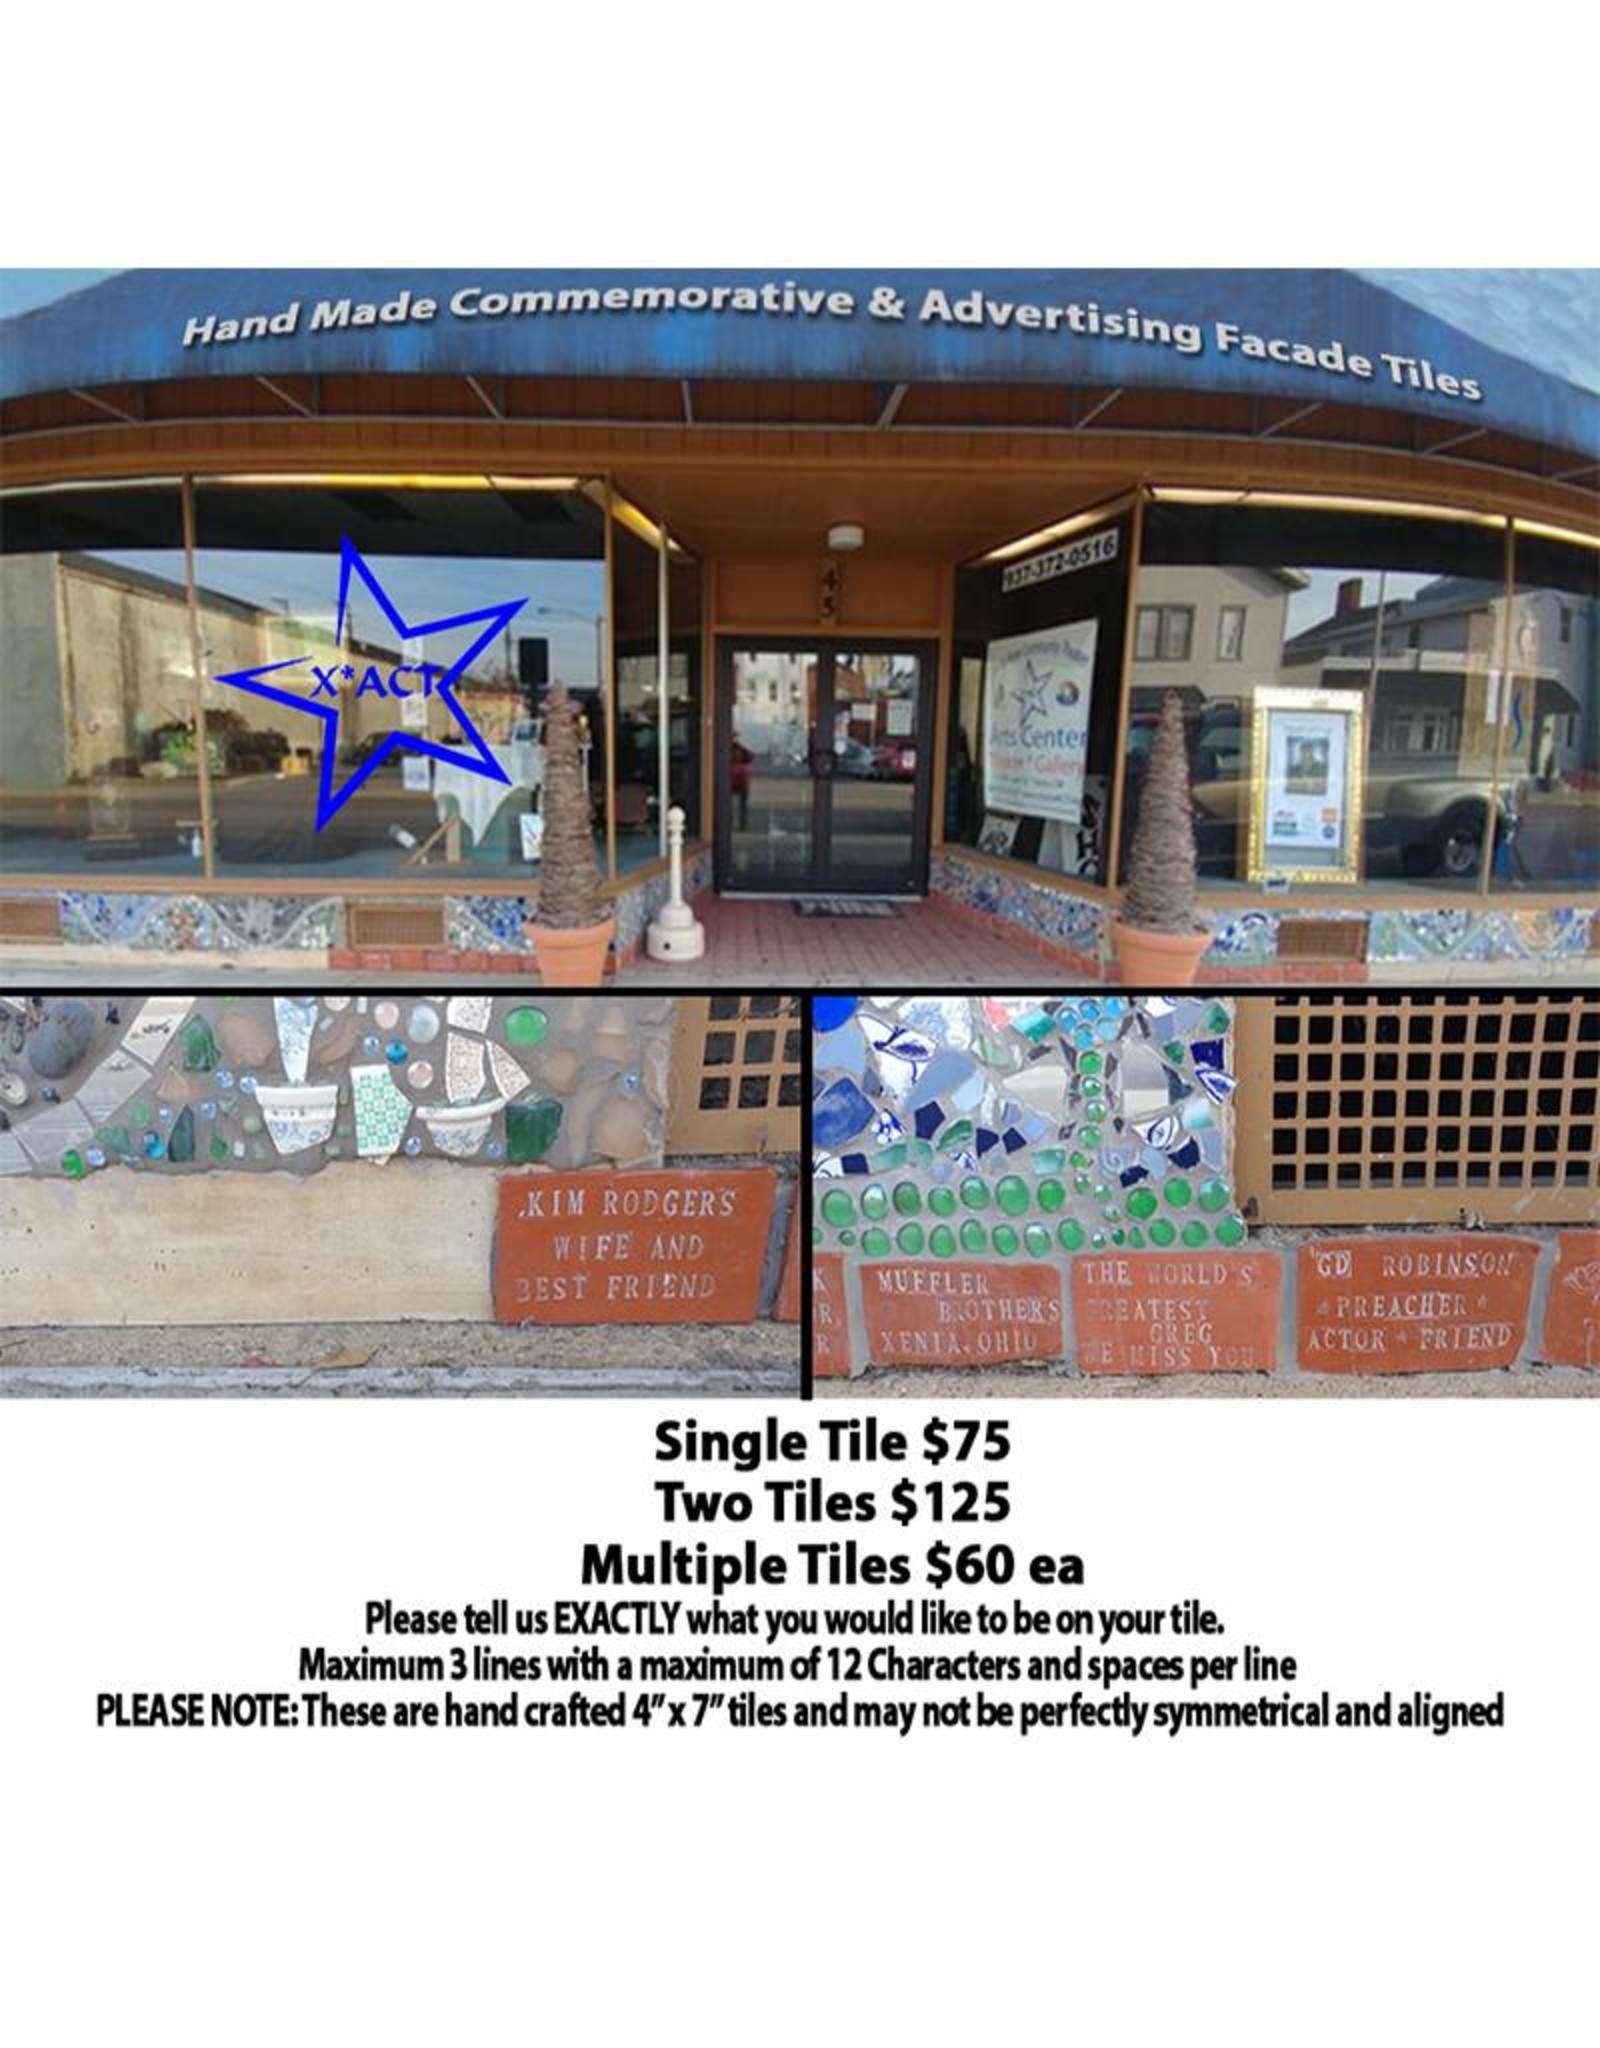 X*ACT Commemorative Tile Project Hand Made Commemorative & Advertising Facade Tiles